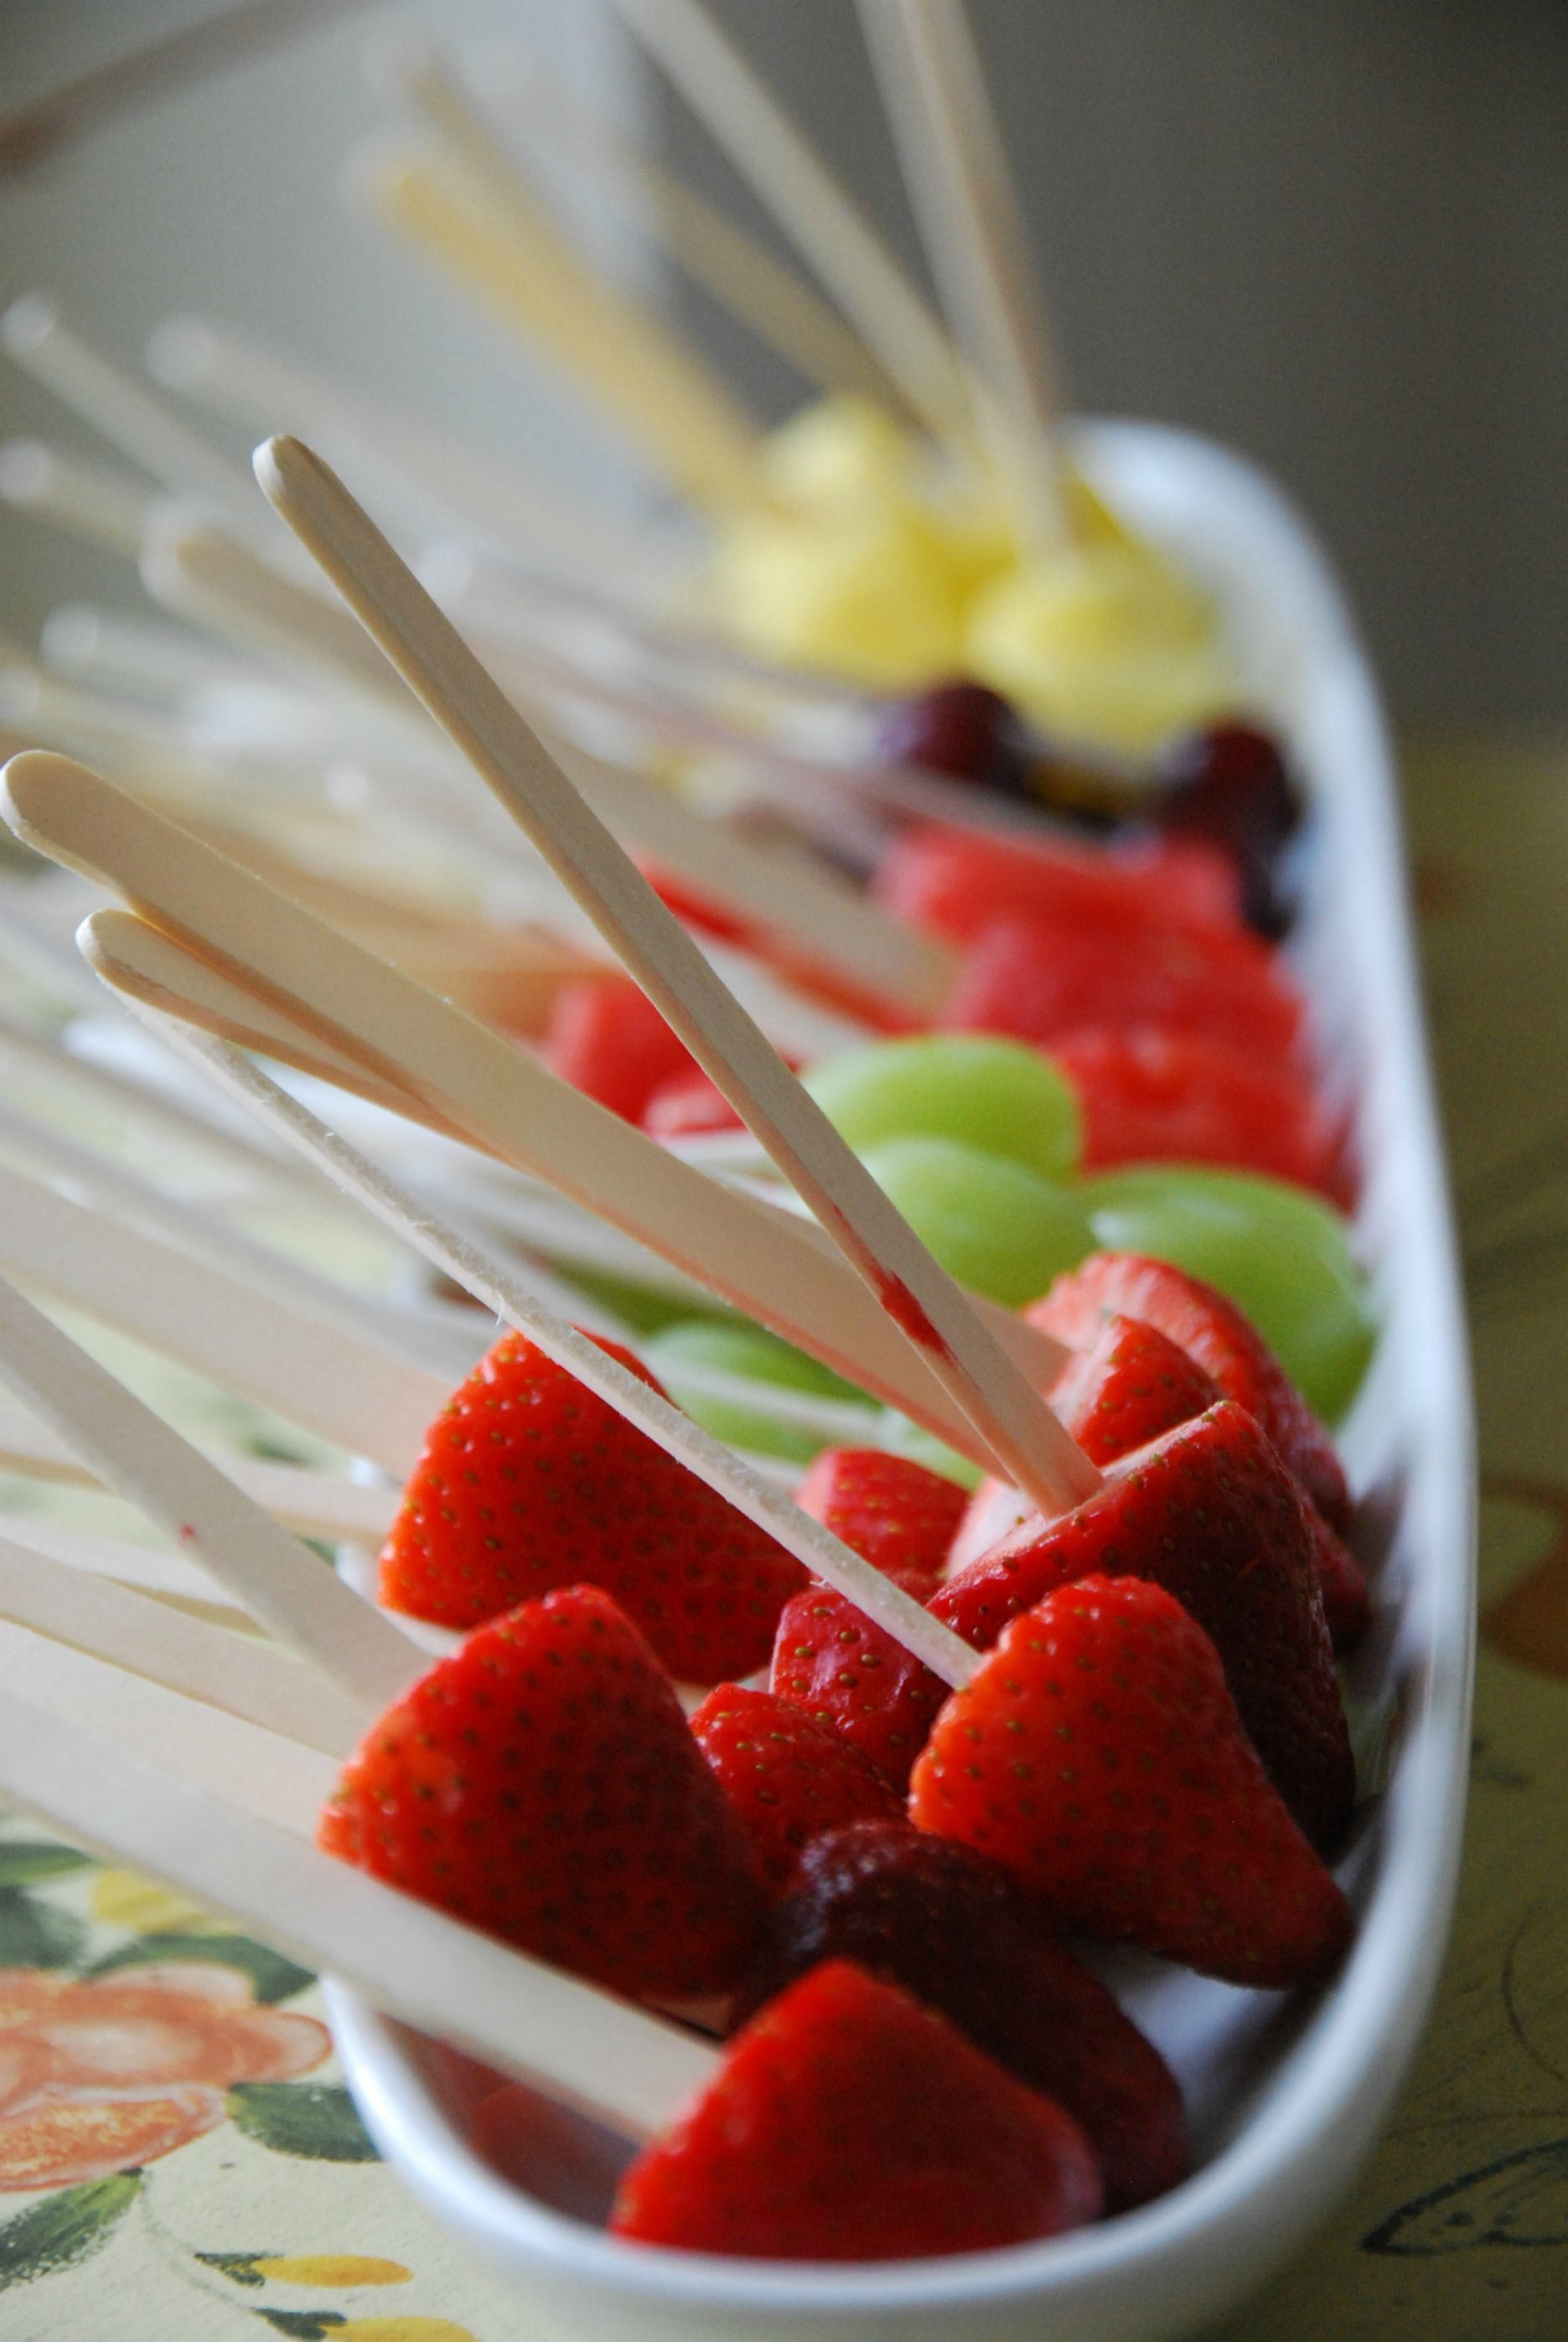 Fresh fruit lollipops, how brilliant!  Food on sticks, finger foods, lollipops, things that are easy to pick up and eat in a bite and throw the stick away... easy food and cleanup.  I like this idea.